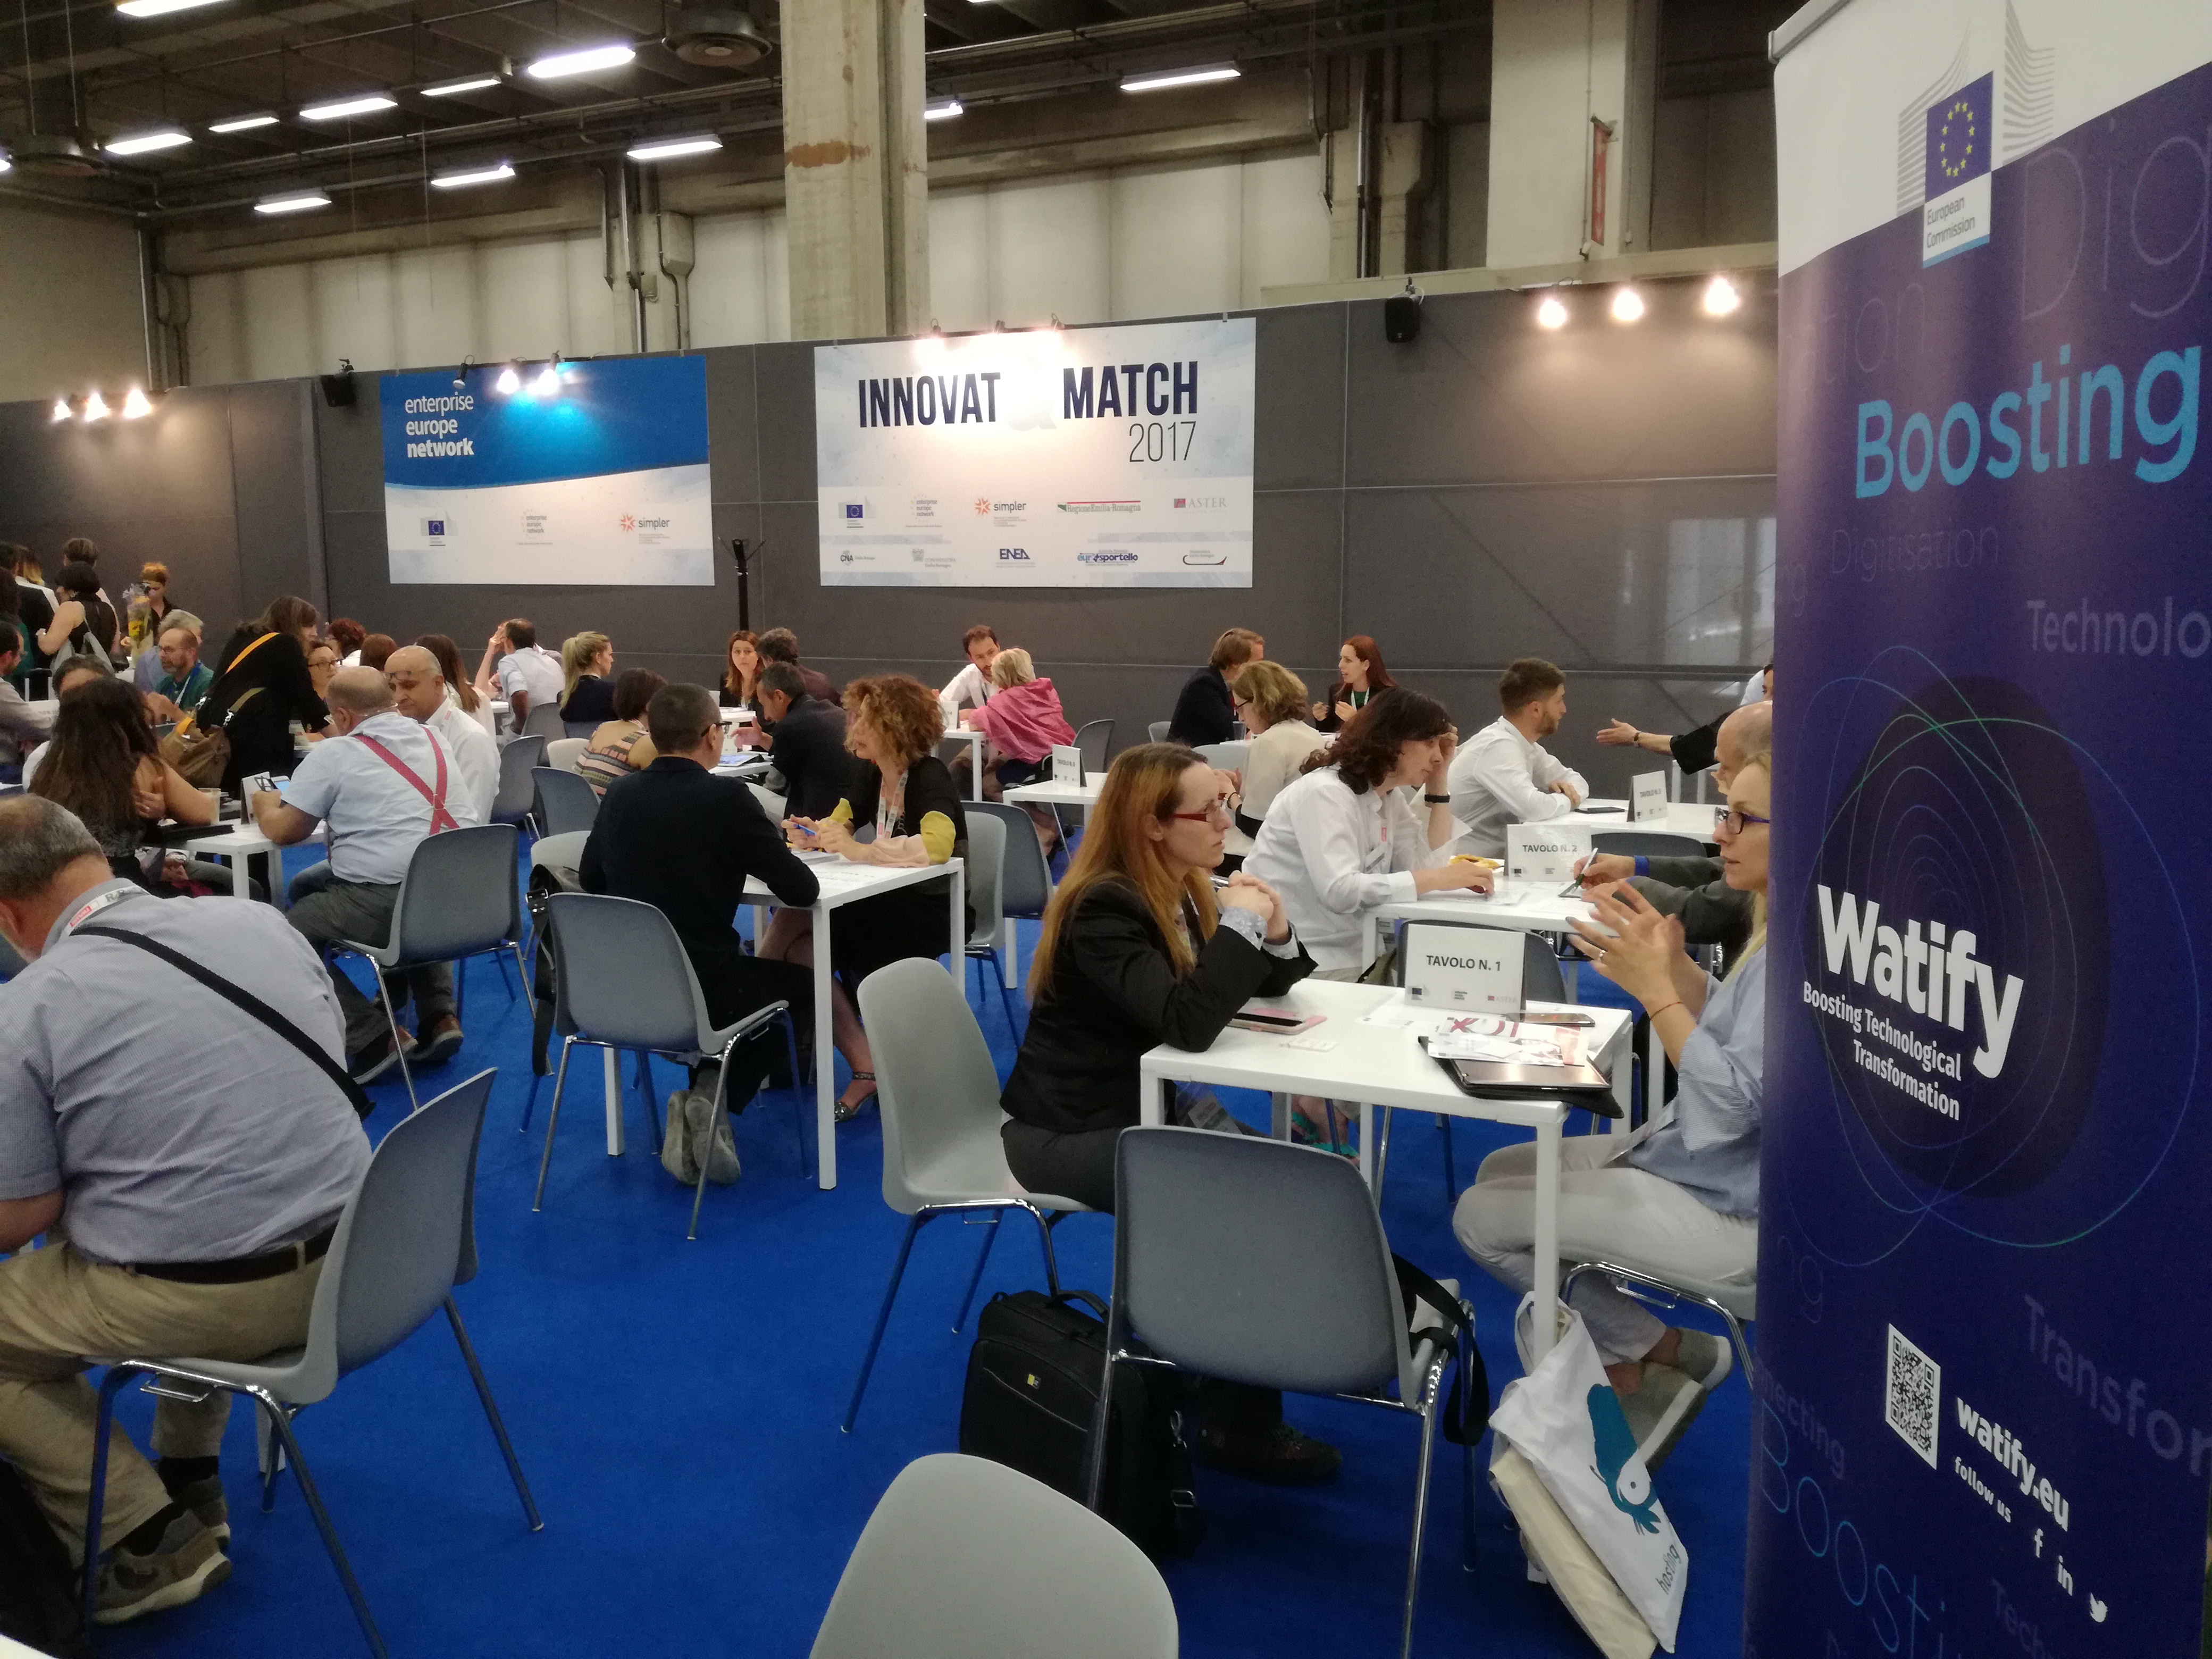 Match making session /moda-ml/images/IMG_20170609_142314.jpg